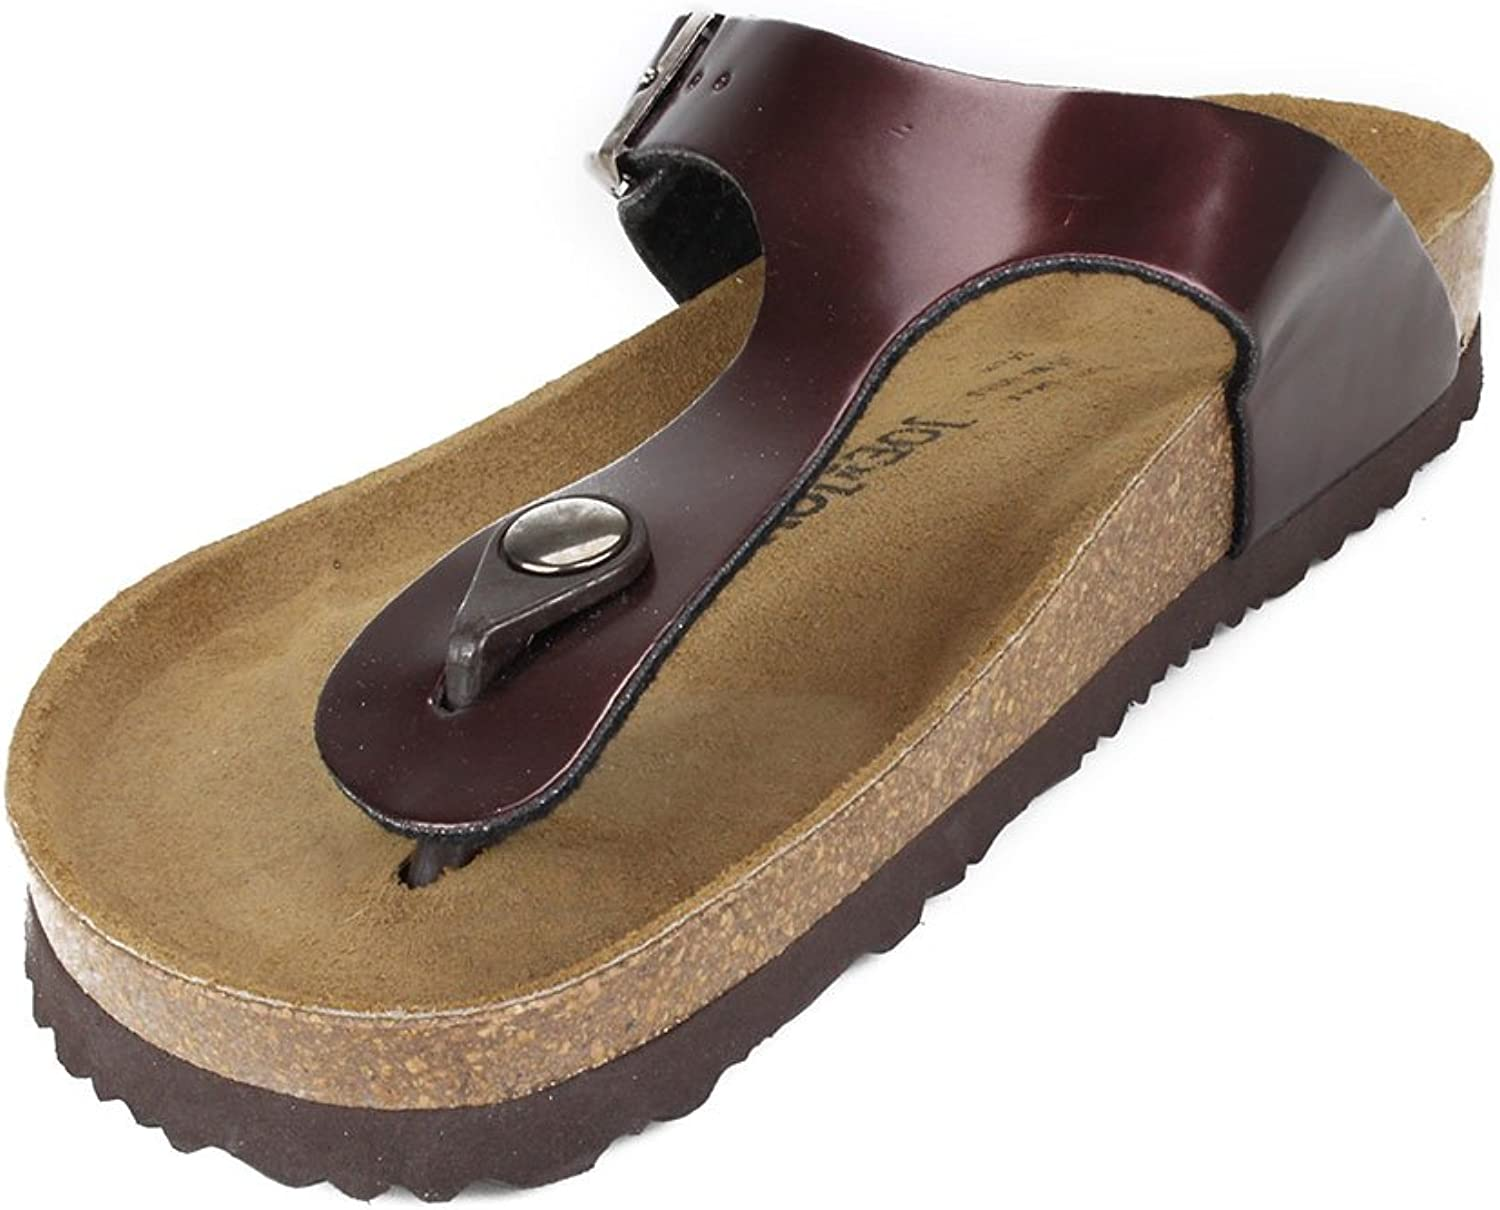 Sizes W5-W11 // M4-M9 JOE N JOYCE Rio Women Thong Sandals Cork Flip Flops with Comfort-Footbed for Women Basic Colors